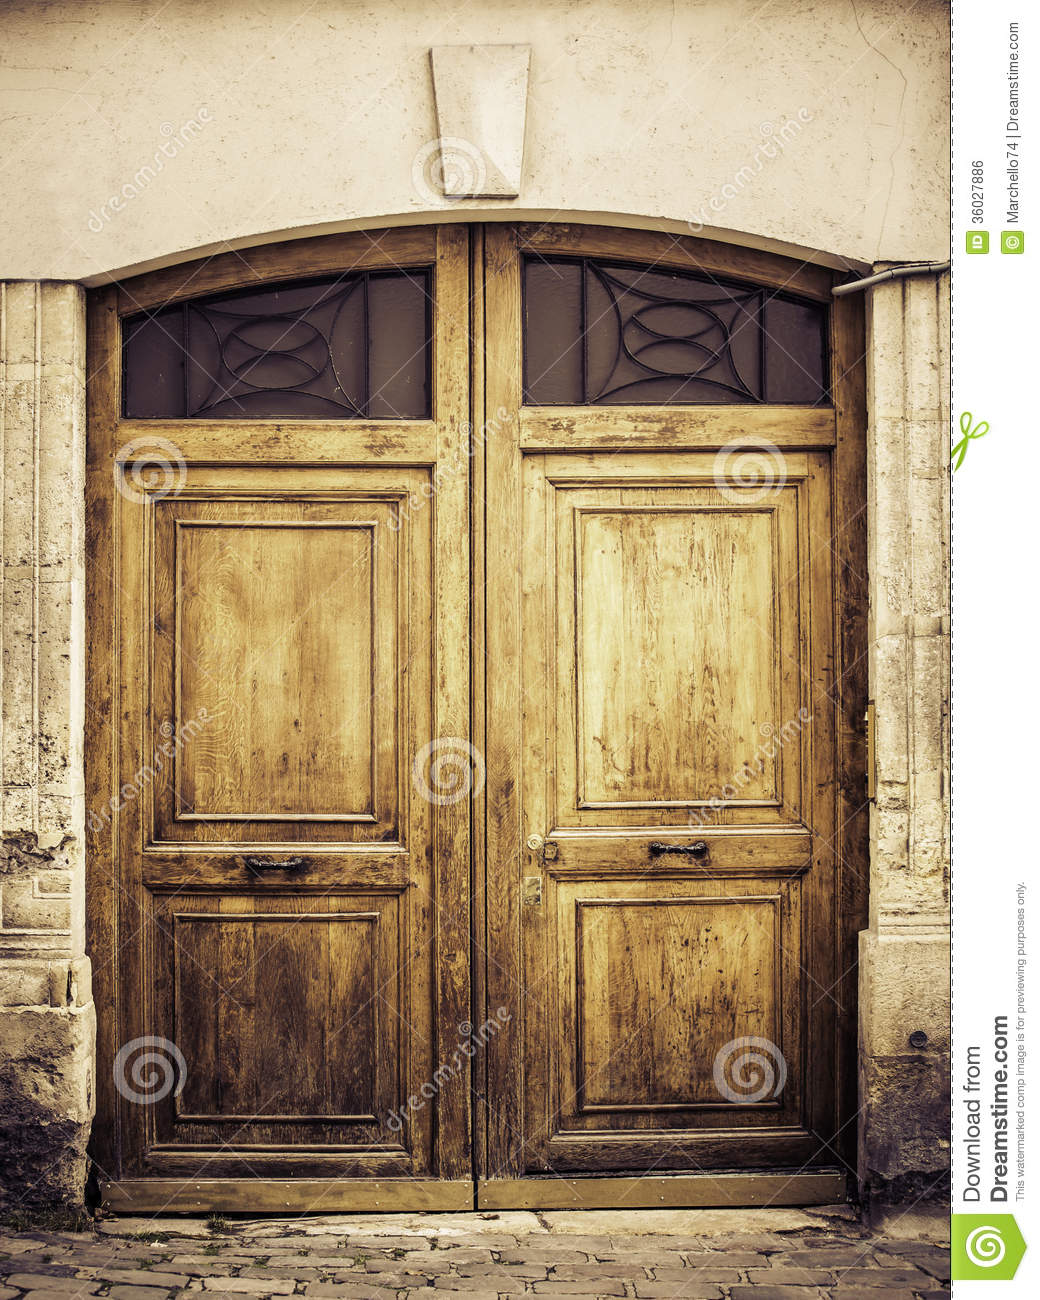 1300 #86A922 Old Wooden Arch Entry Door Royalty Free Stock Image Image: 36027886 image Arched Wood Entry Doors 40831040